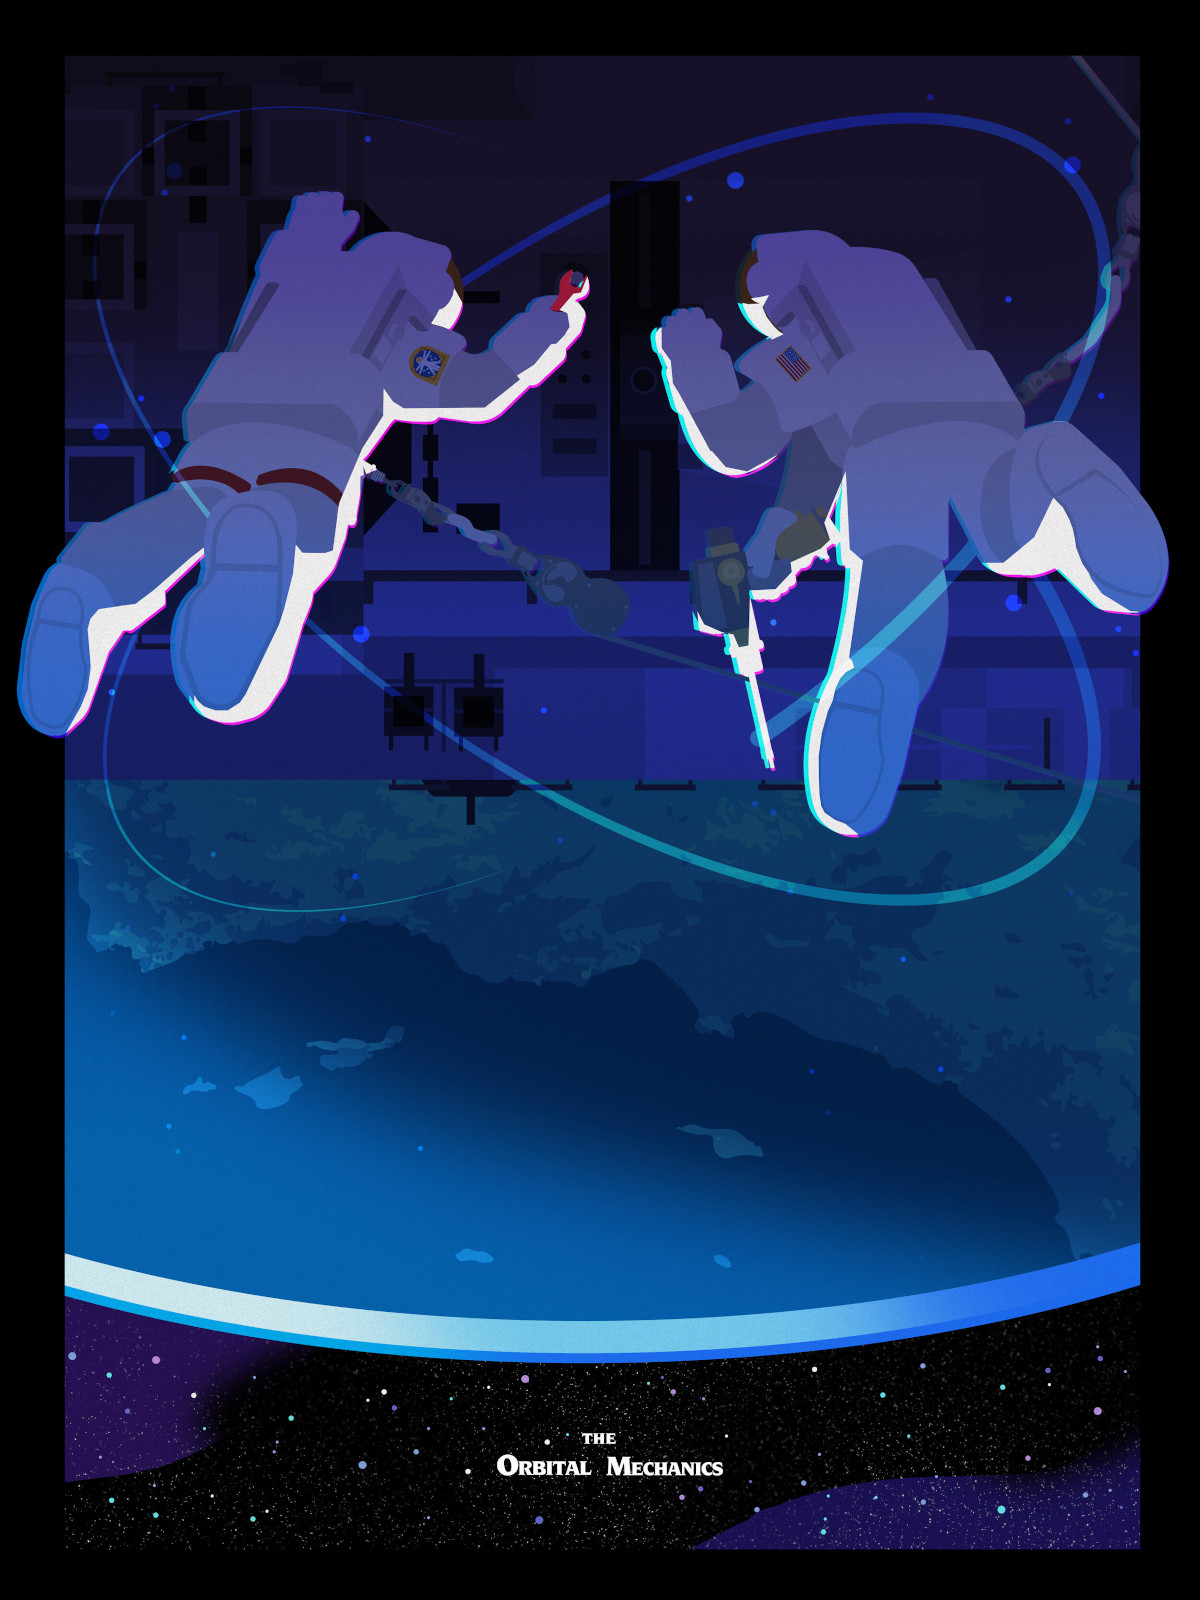 """Two astronauts in space suits float far above a planet. They are attached to a space station. Text at the bottom reads """"The Orbital Mechanics""""."""